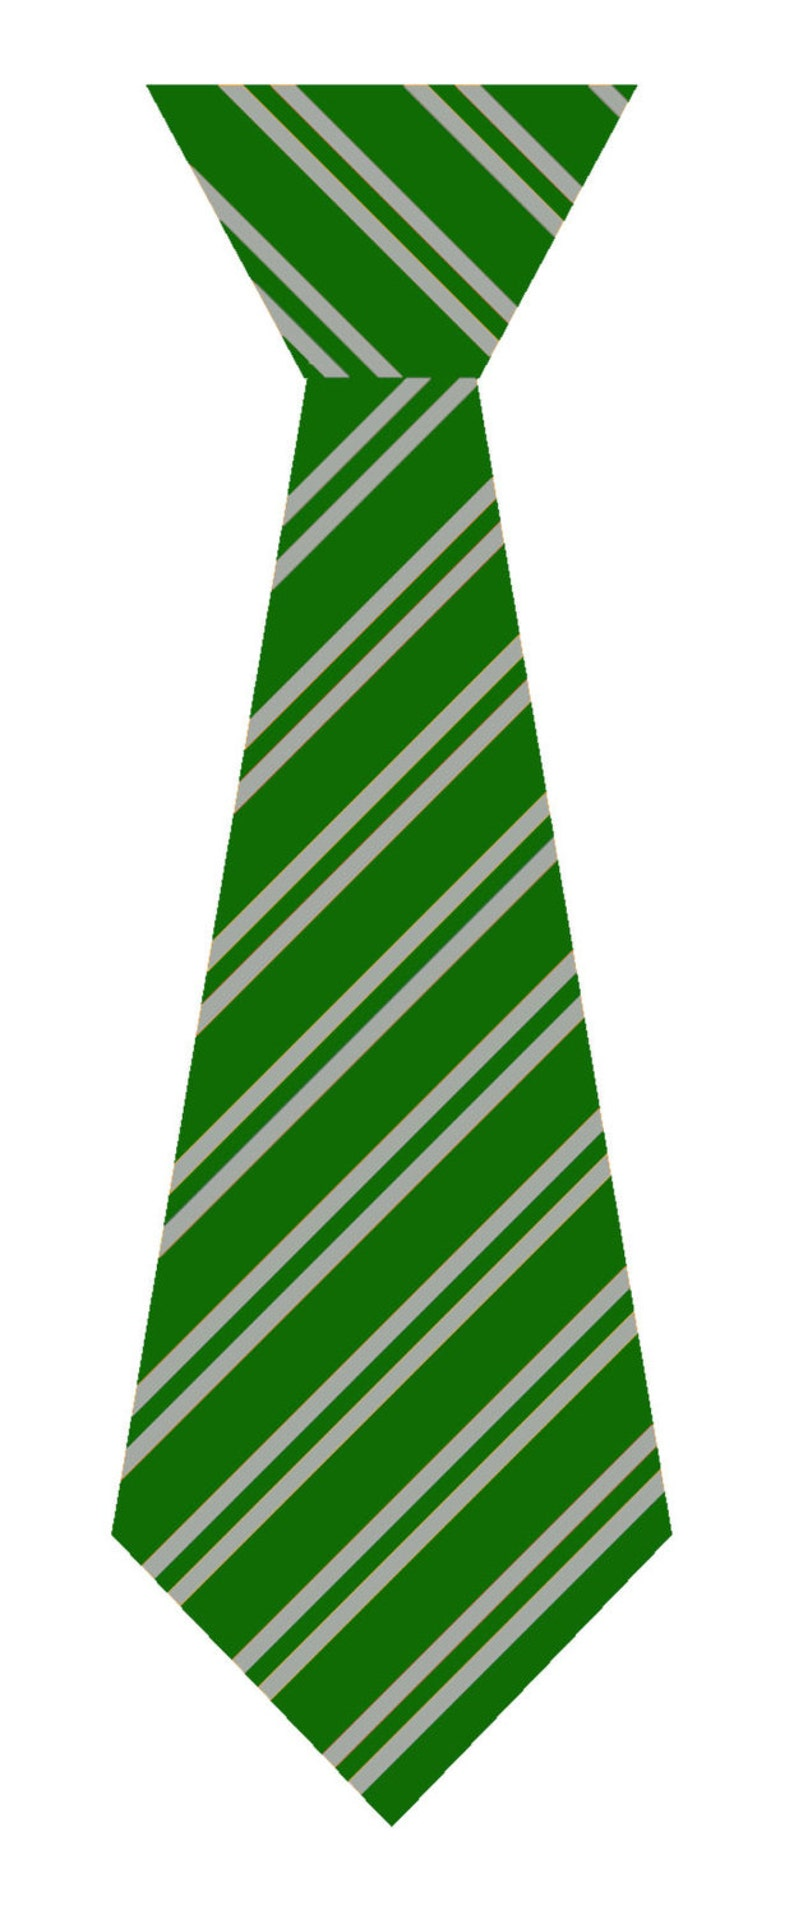 House Color Tie Vinyl Decal, Laptop Decal, House Colors, Green and Silver  Tie, Fandom Decal, Geely Vinyl,Snake House Uniform Tie